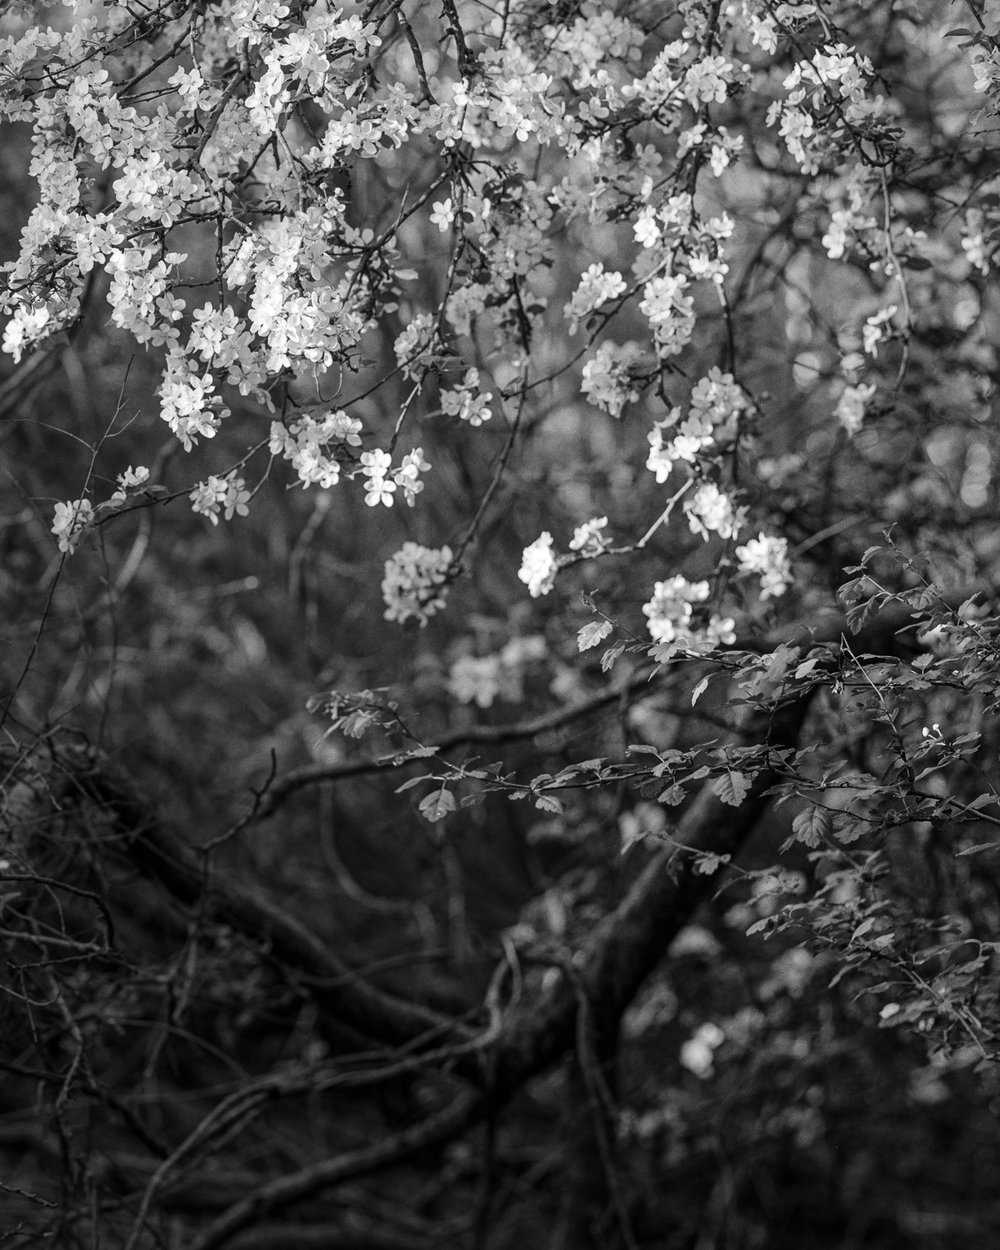 Blossom | Intrepid 4x5 | Darren Rose